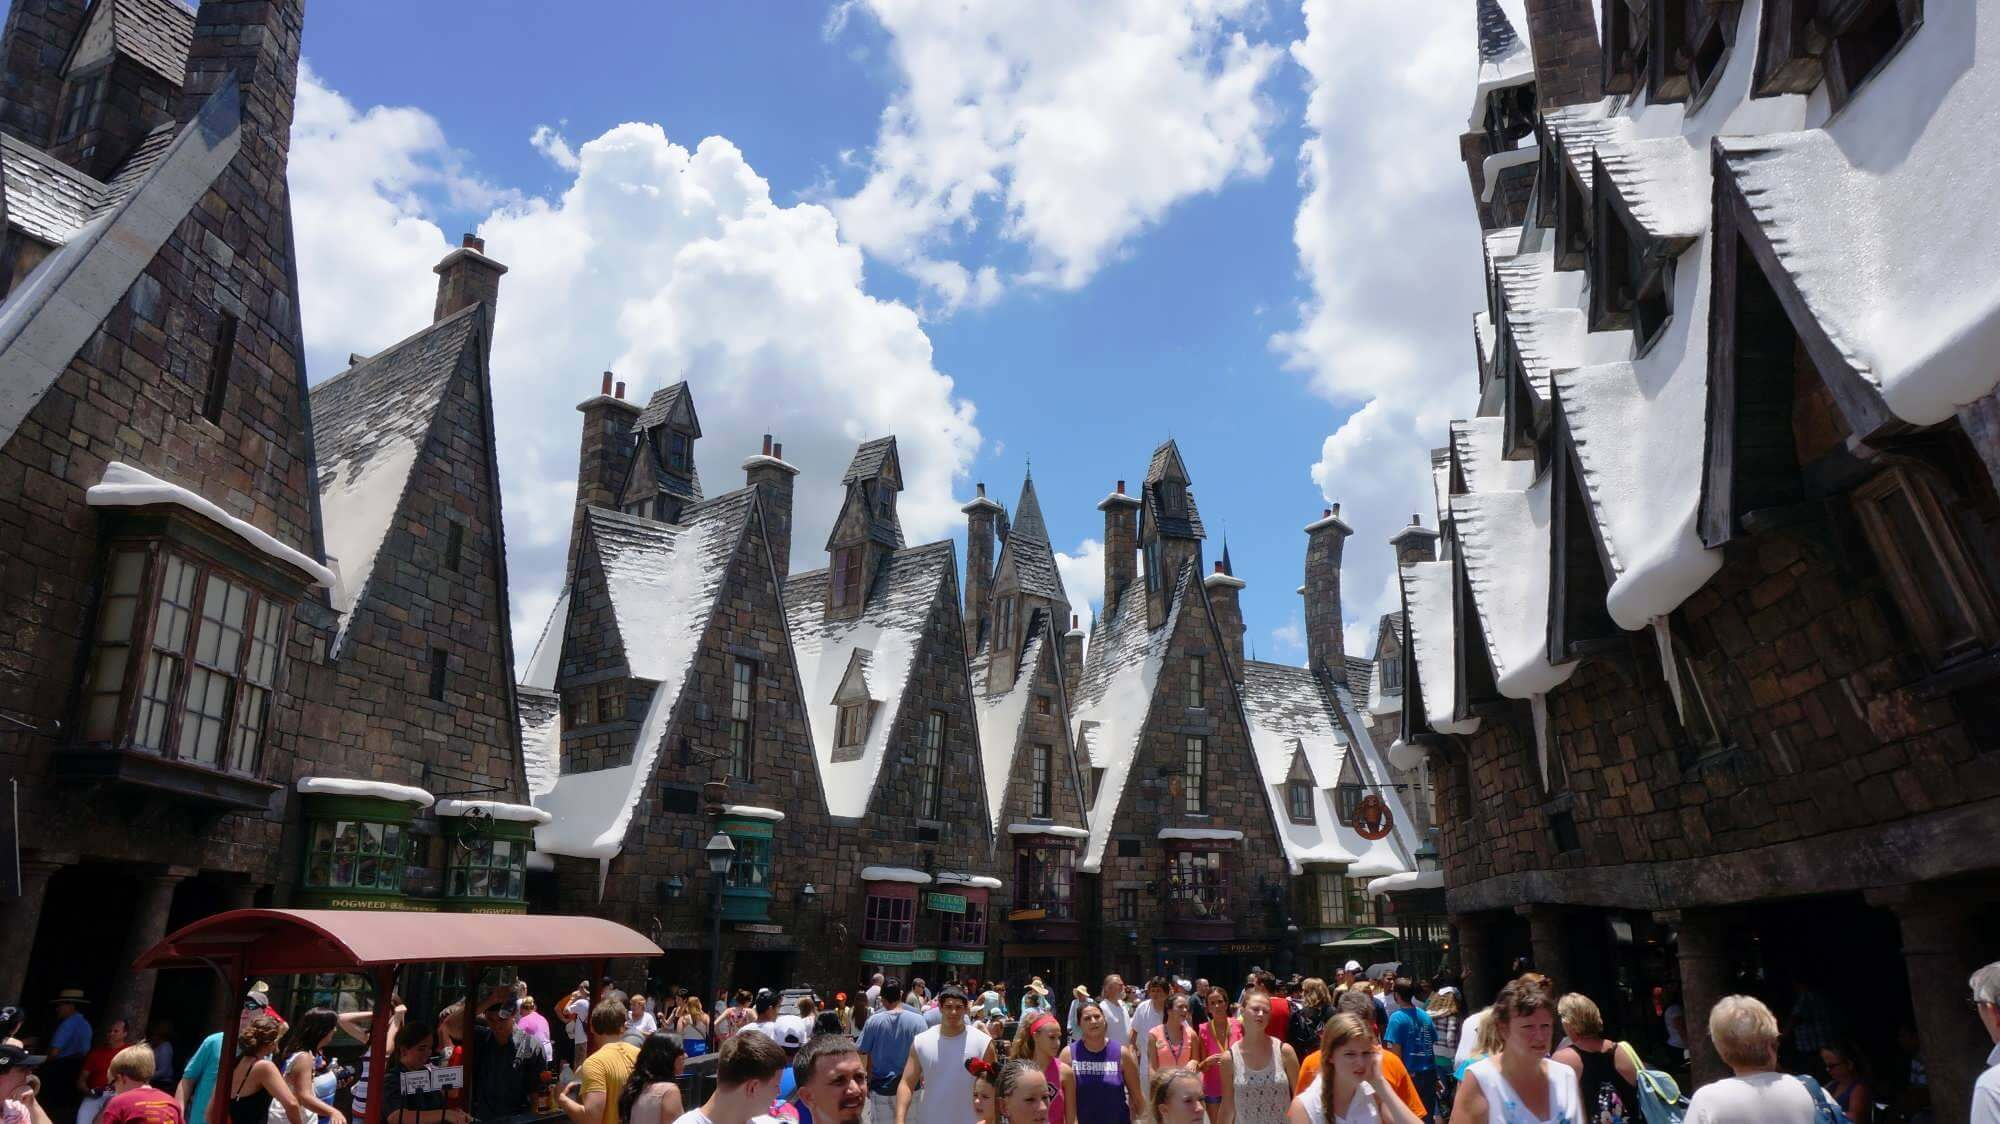 Nova montanha-russa do Harry Potter no Islands of Adventure em Orlando: The Wizarding World of Harry Potter - Hogsmeade